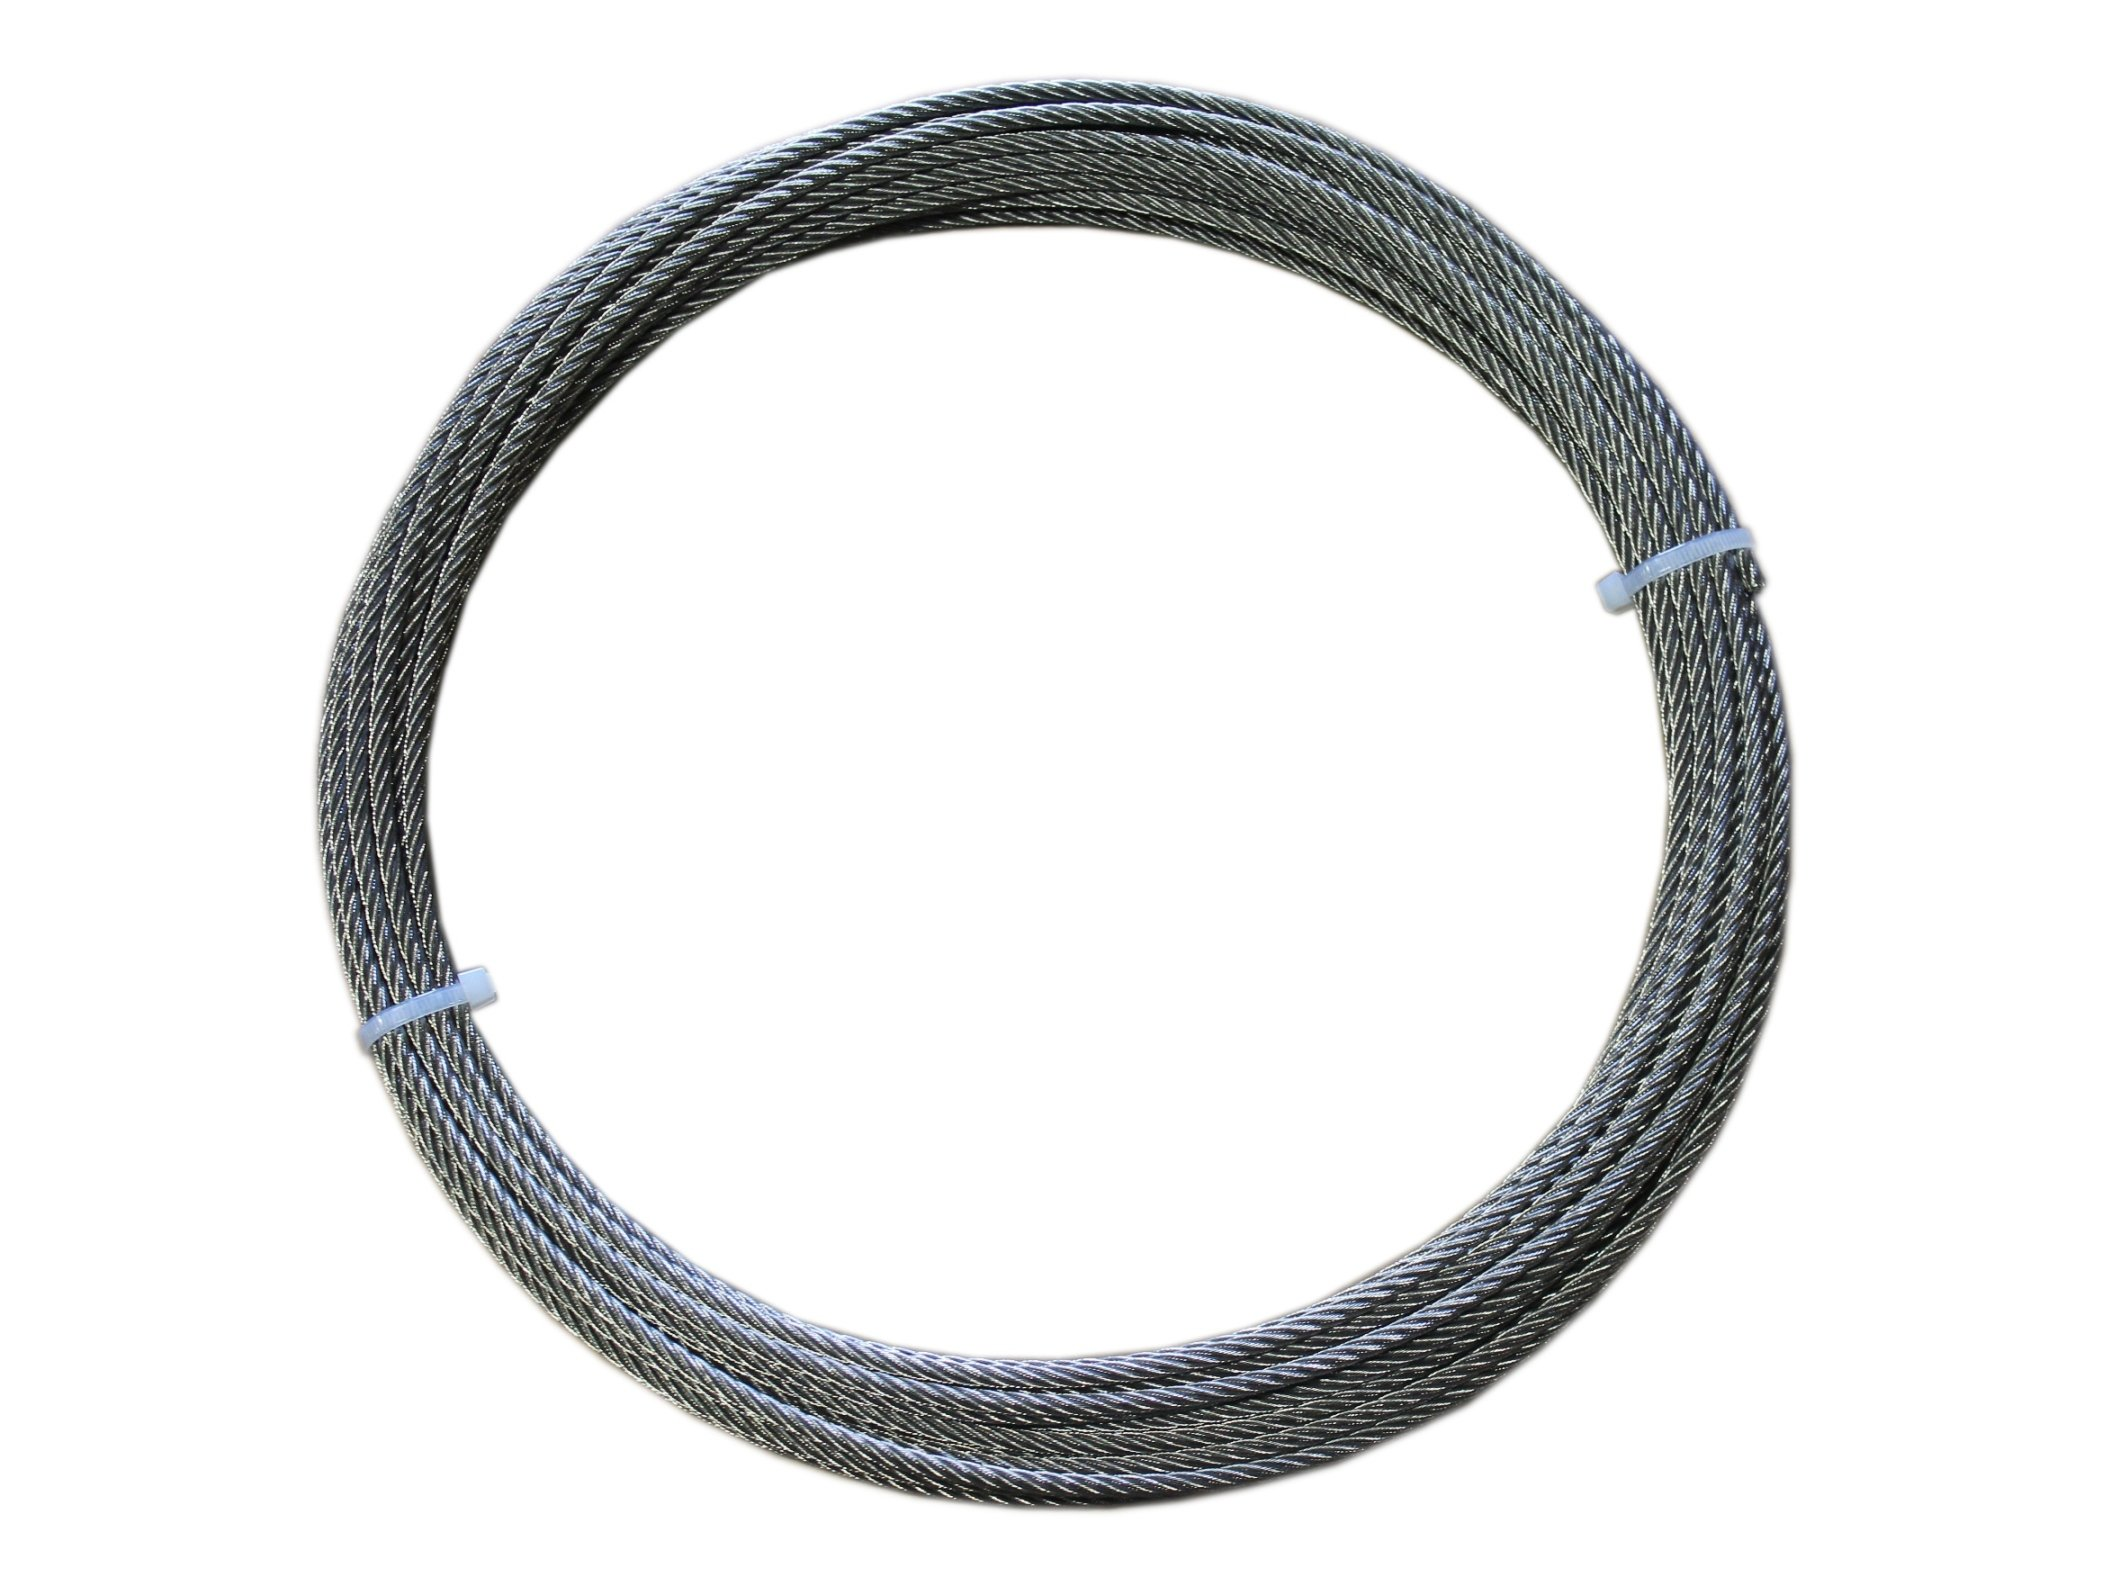 Cheap Stainless Steel Wire Rope Breaking Strength, find Stainless ...